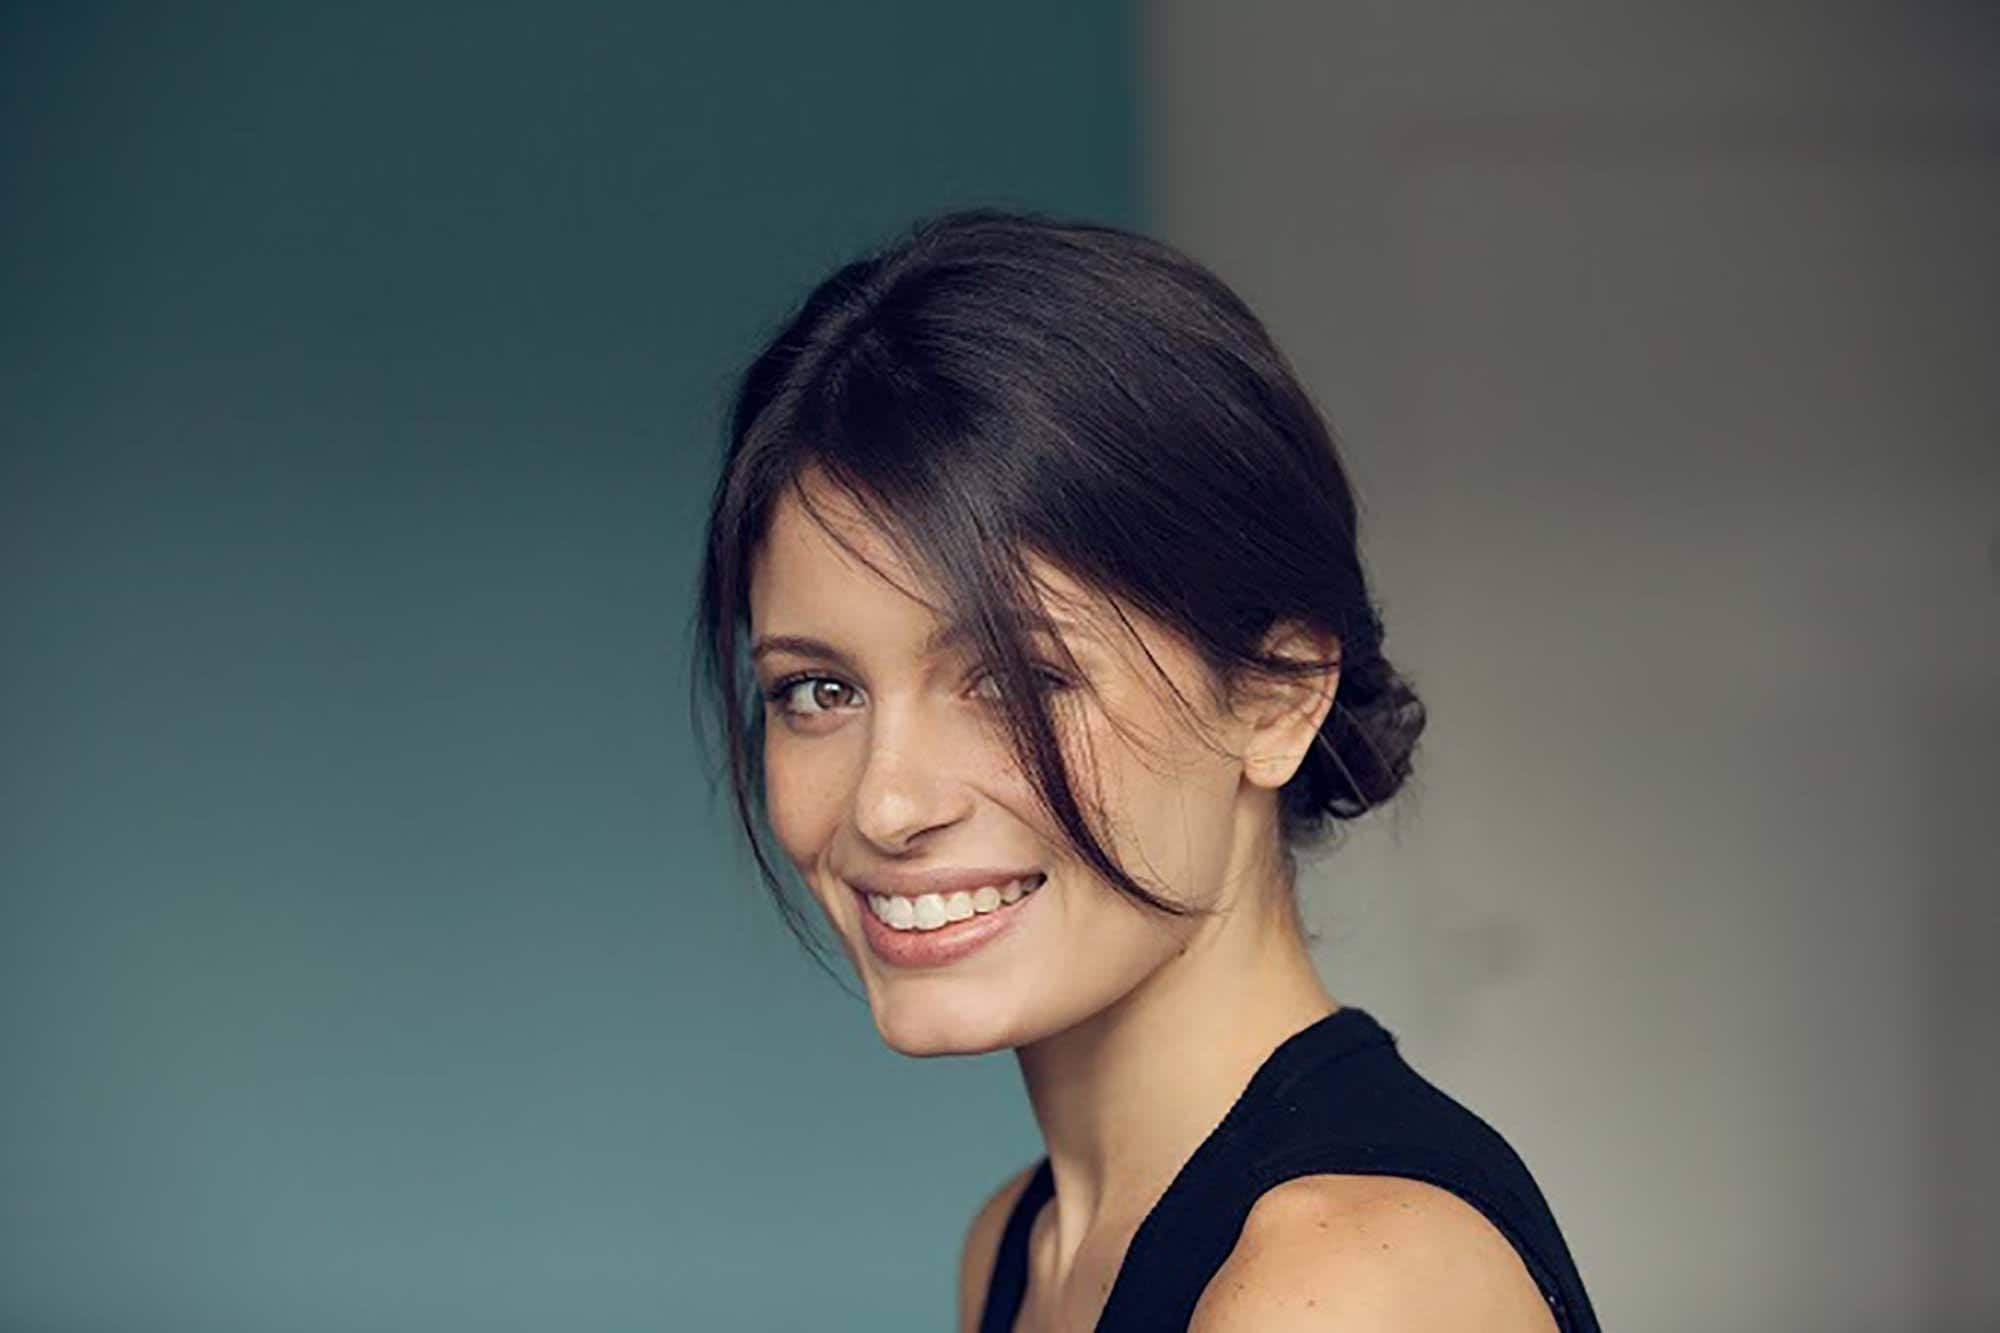 Gym hairstyles for short hair: Brunette woman with a low bun hairstyle